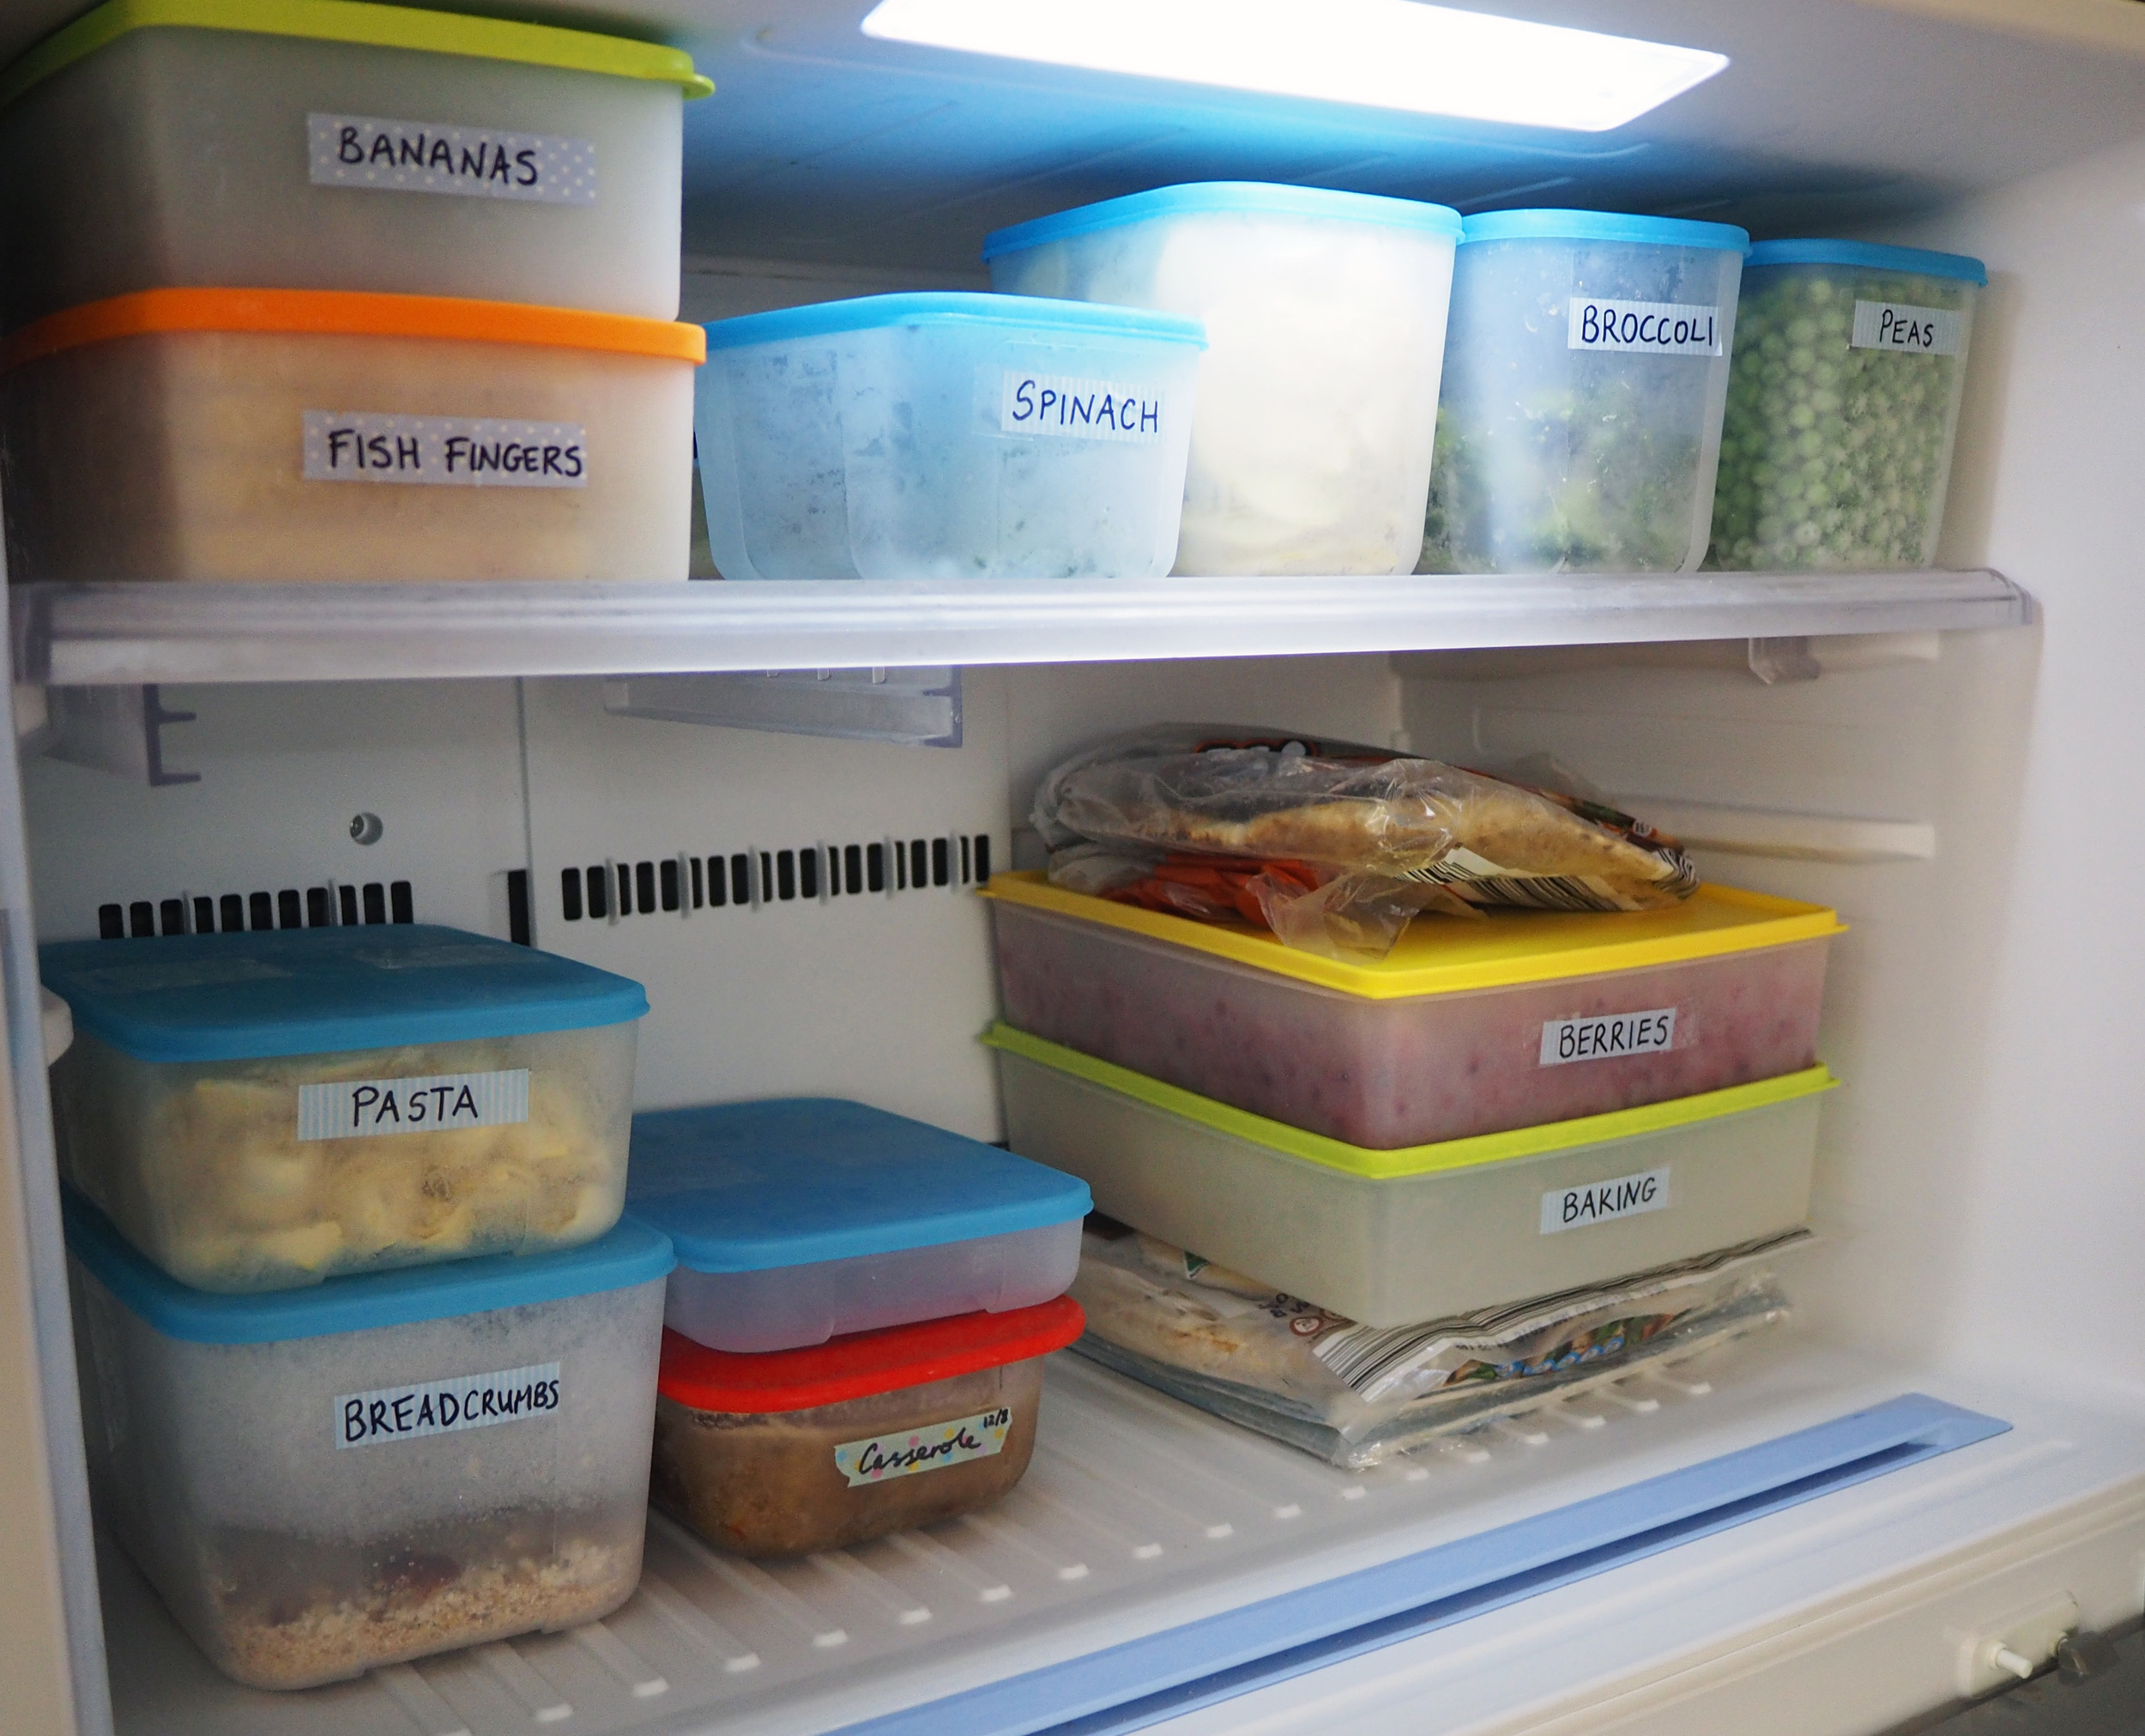 An organised freezer using air-and-liquid-tight containers to store and organise food so that everything is easy to find and accessible